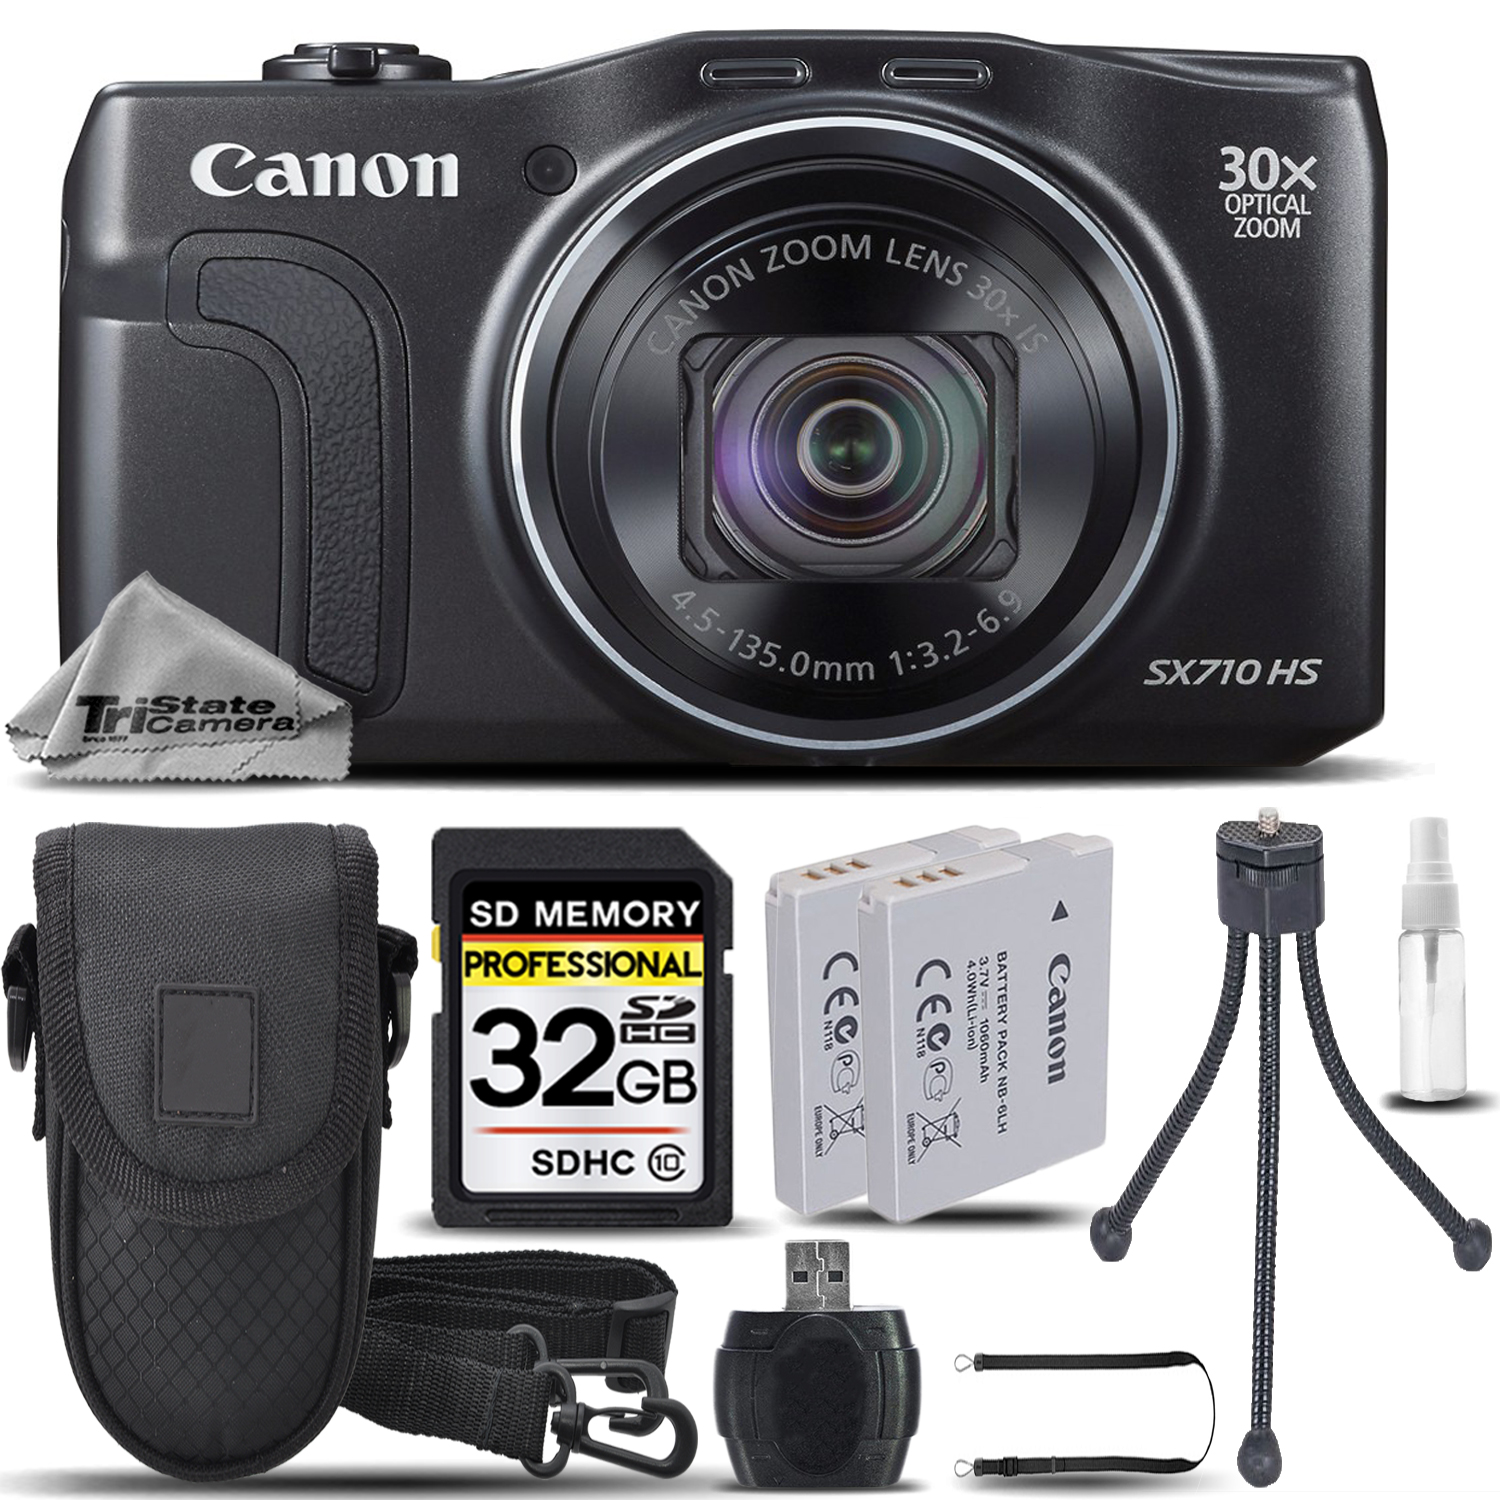 PowerShot SX710 HS Digital Camera (Black) + CASE +EXT BATT +TRIPOD + 32GB *FREE SHIPPING*